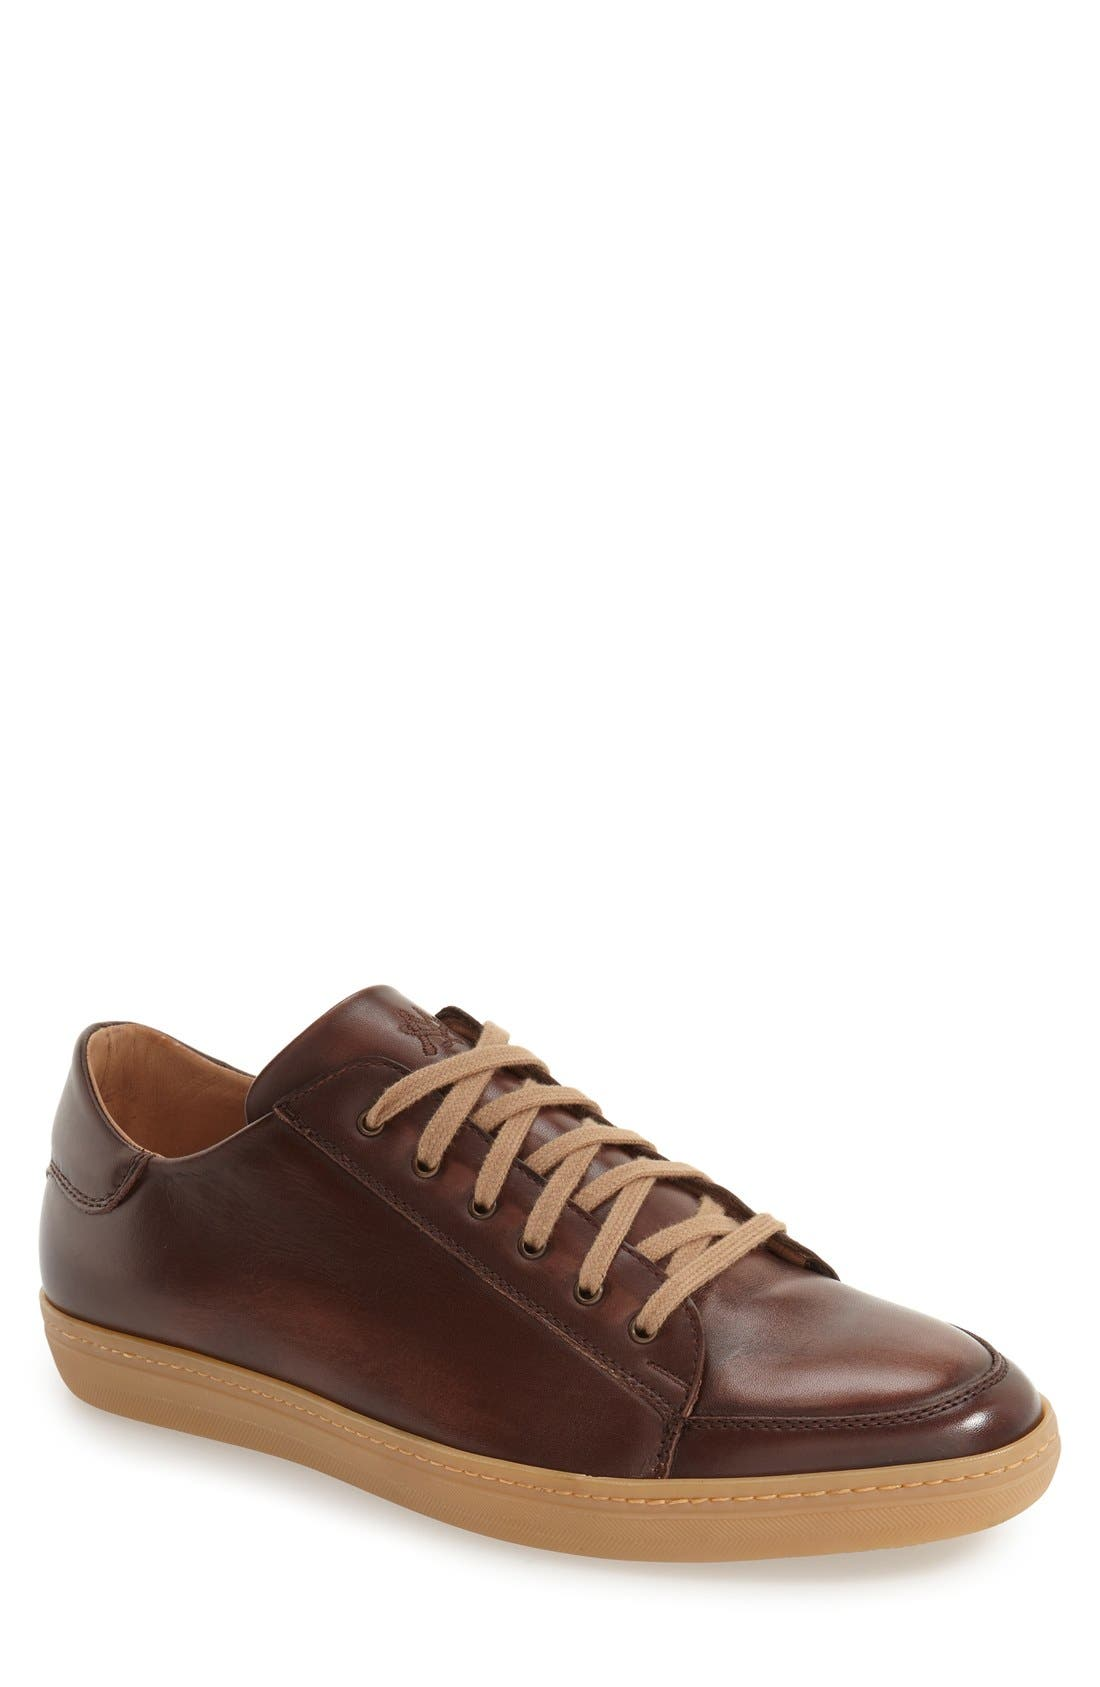 'Masi' Lace-Up Sneaker,                             Main thumbnail 1, color,                             BROWN